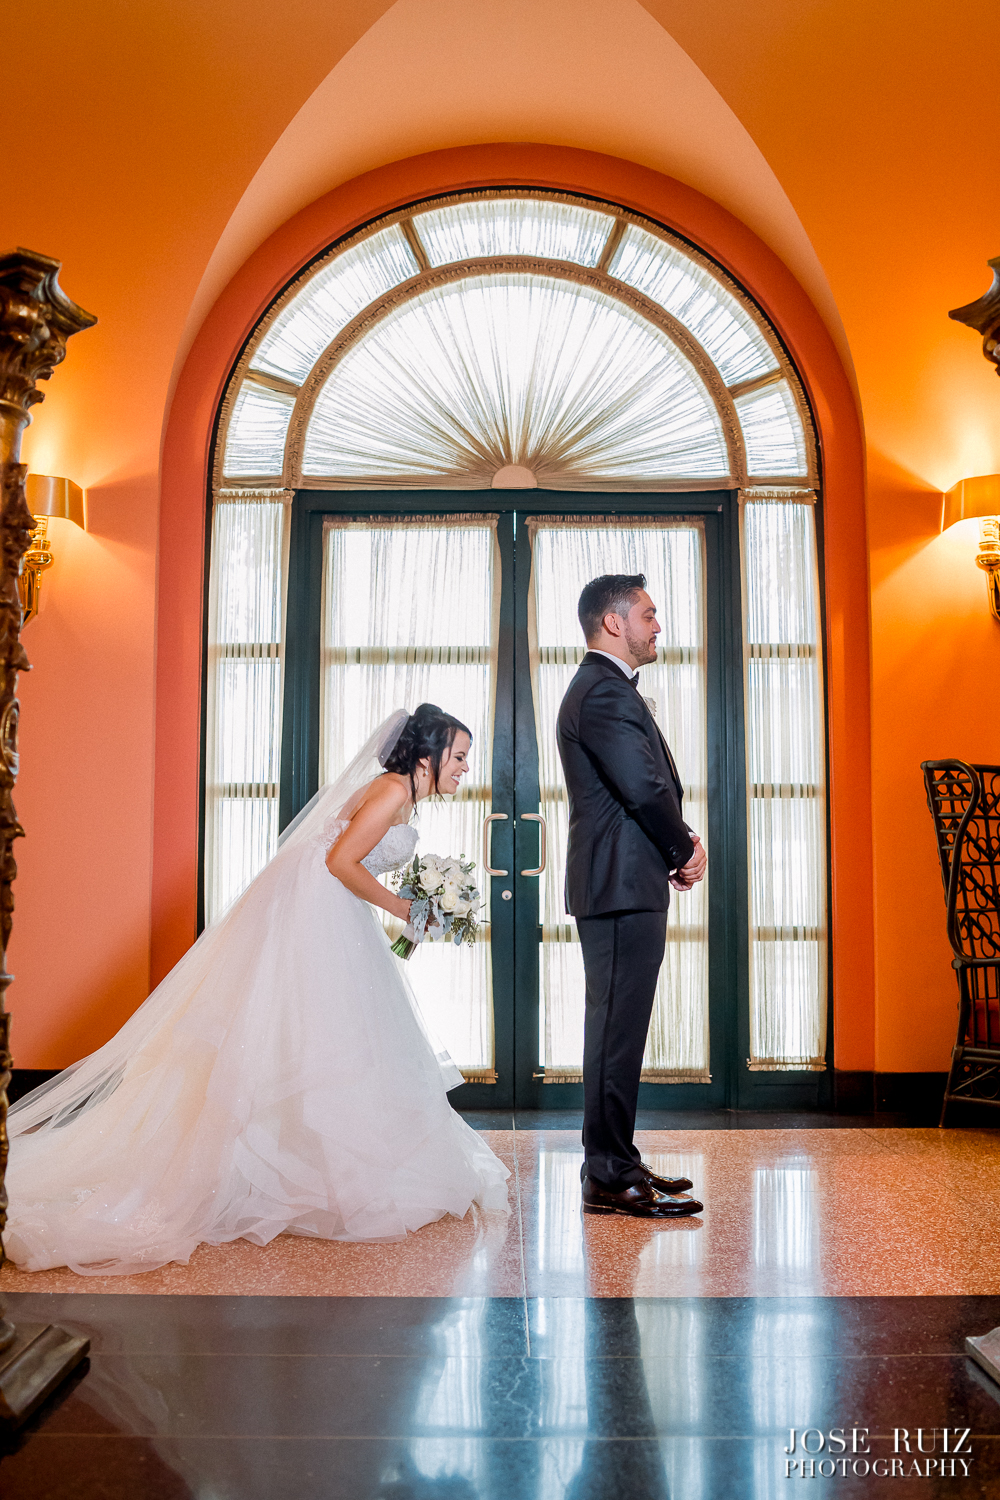 Jose Ruiz Photography- Madalyn & Joel-0025.jpg